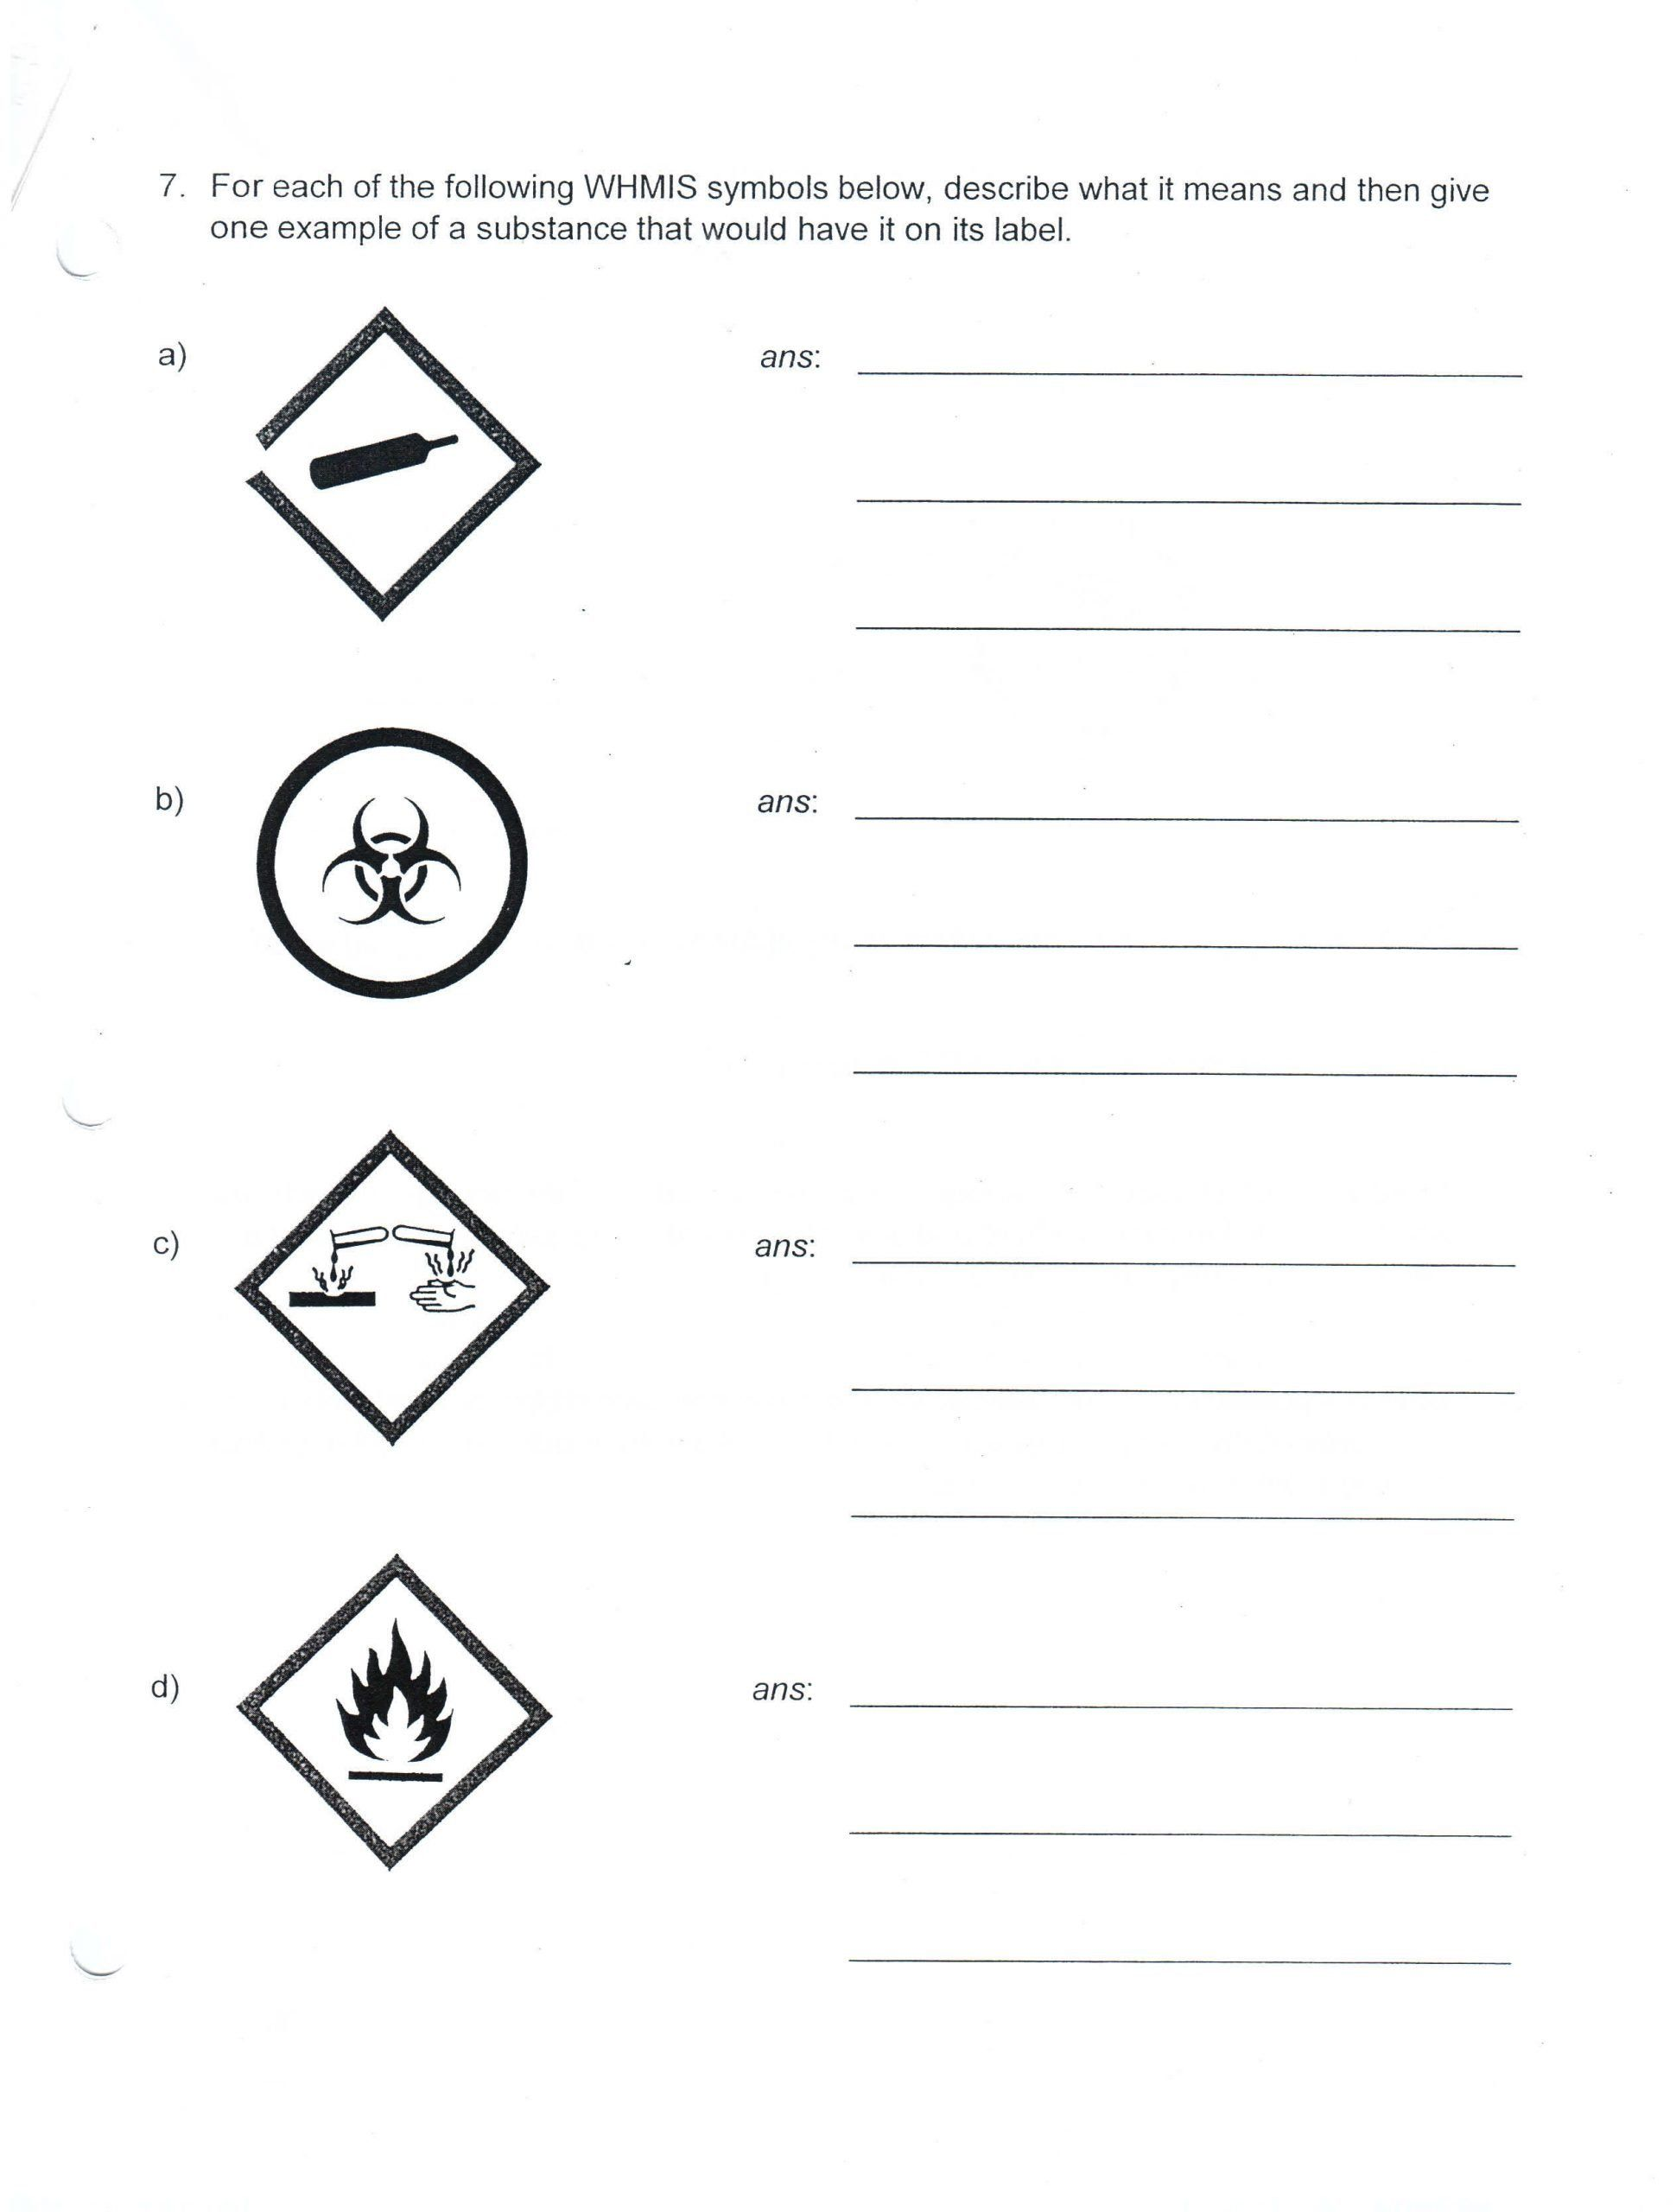 Laboratory Safety Symbols Worksheet Science 8 Mara Benson S Courses Worksheets Time Worksheets Elapsed Time Worksheets